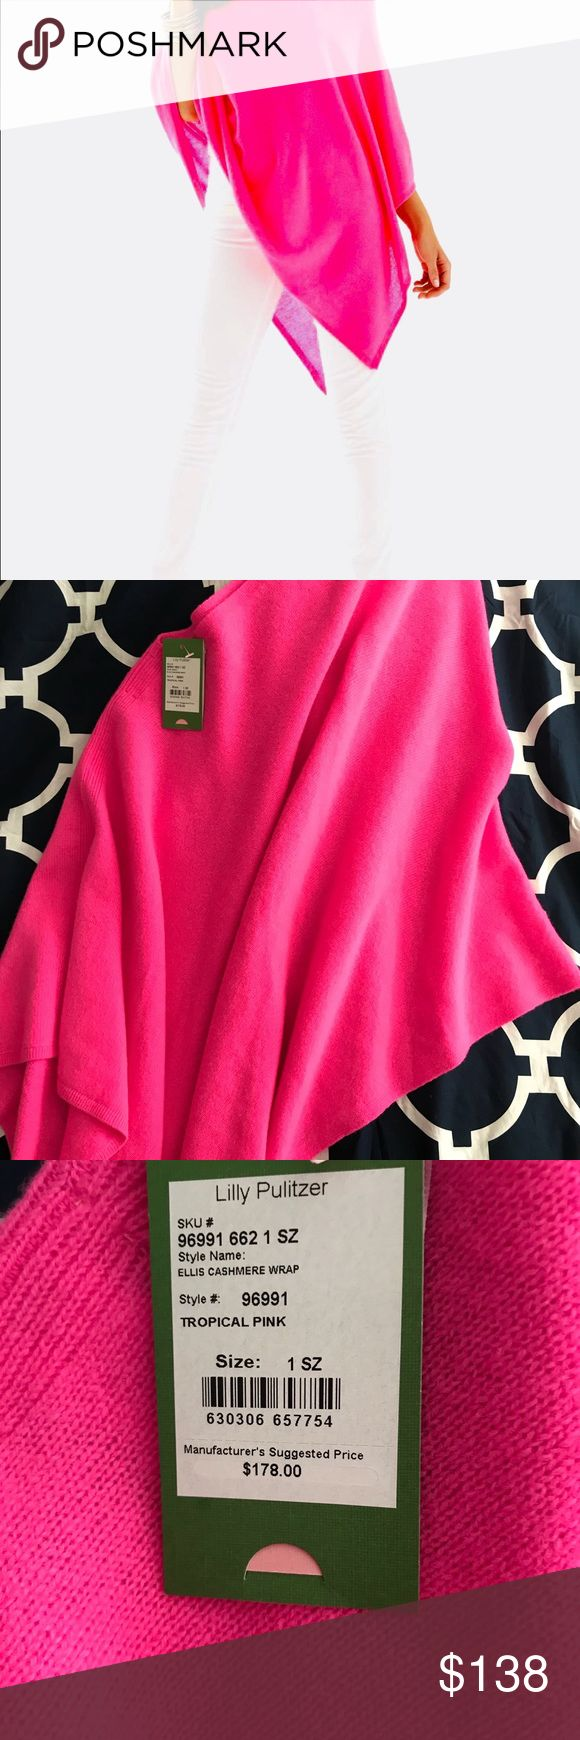 🍍Nwt Lilly Pulitzer Cashmere Wrap fit most 4 6 12 Sold Out! Perfect all year round! 100% Cashmere. Bright hot pink Ellis wrap.  Tag goes off shoulder to give the peek a boo effect.  Beautiful & Flawless.  Perfect for any occasion. Size 1- 1 size fits most. Lilly Pulitzer Sweaters Shrugs & Ponchos